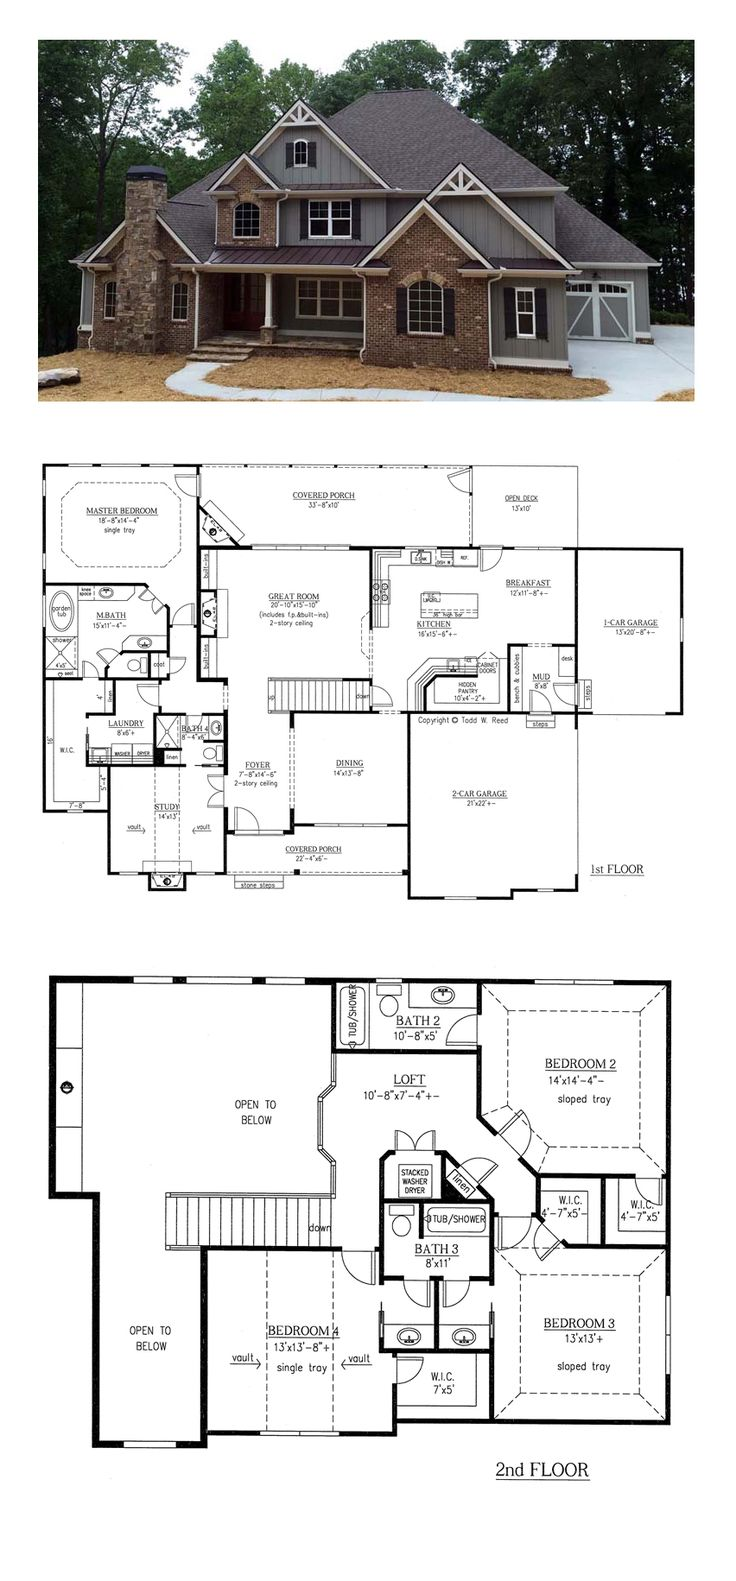 Architecture Houses Blueprints best 20+ floor plans ideas on pinterest | house floor plans, house